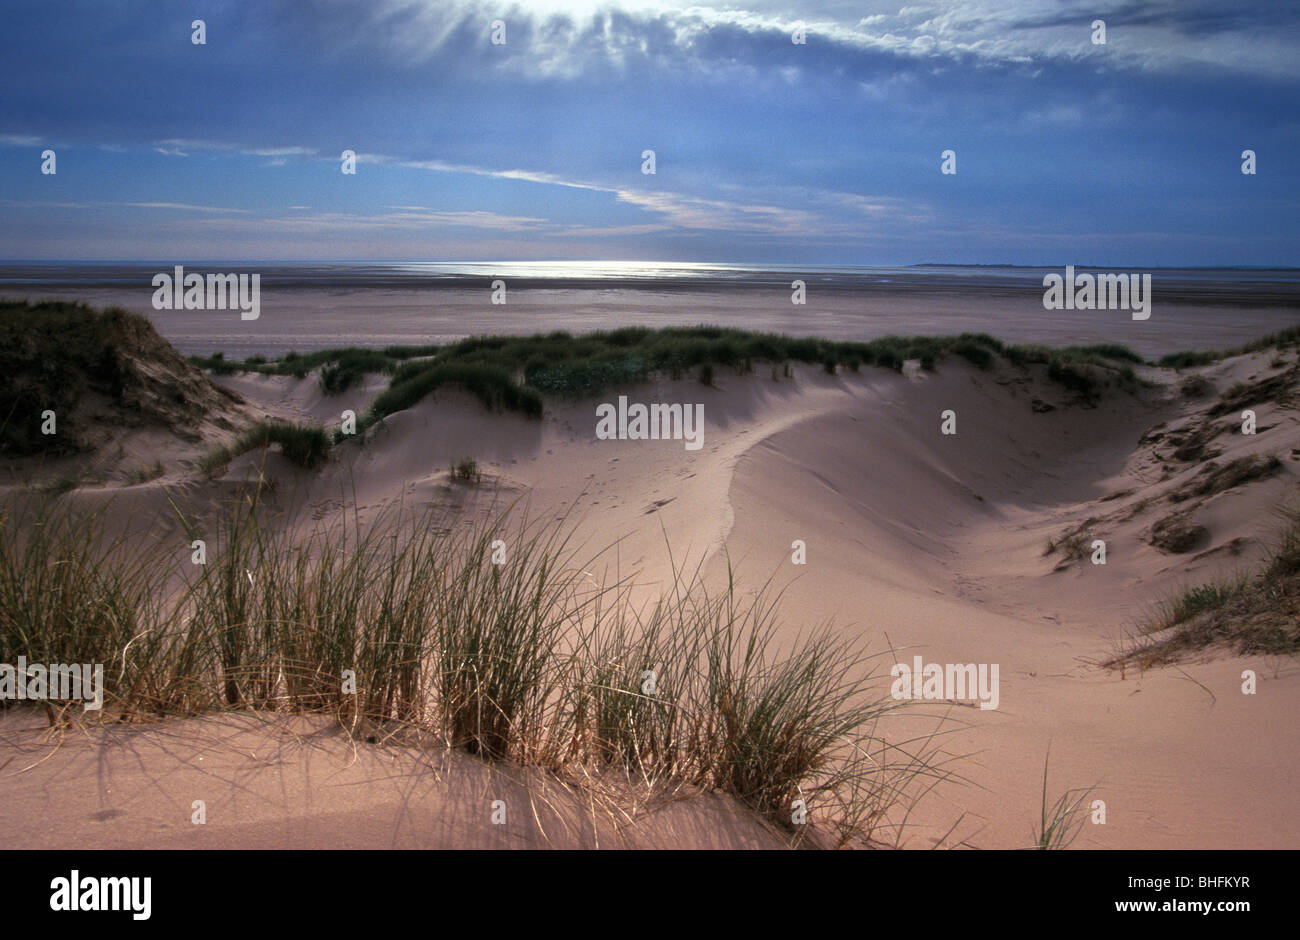 Marram grass and sand dunes at Sandscale Haws National Nature Reserve Cumbria England June 2000 - Stock Image